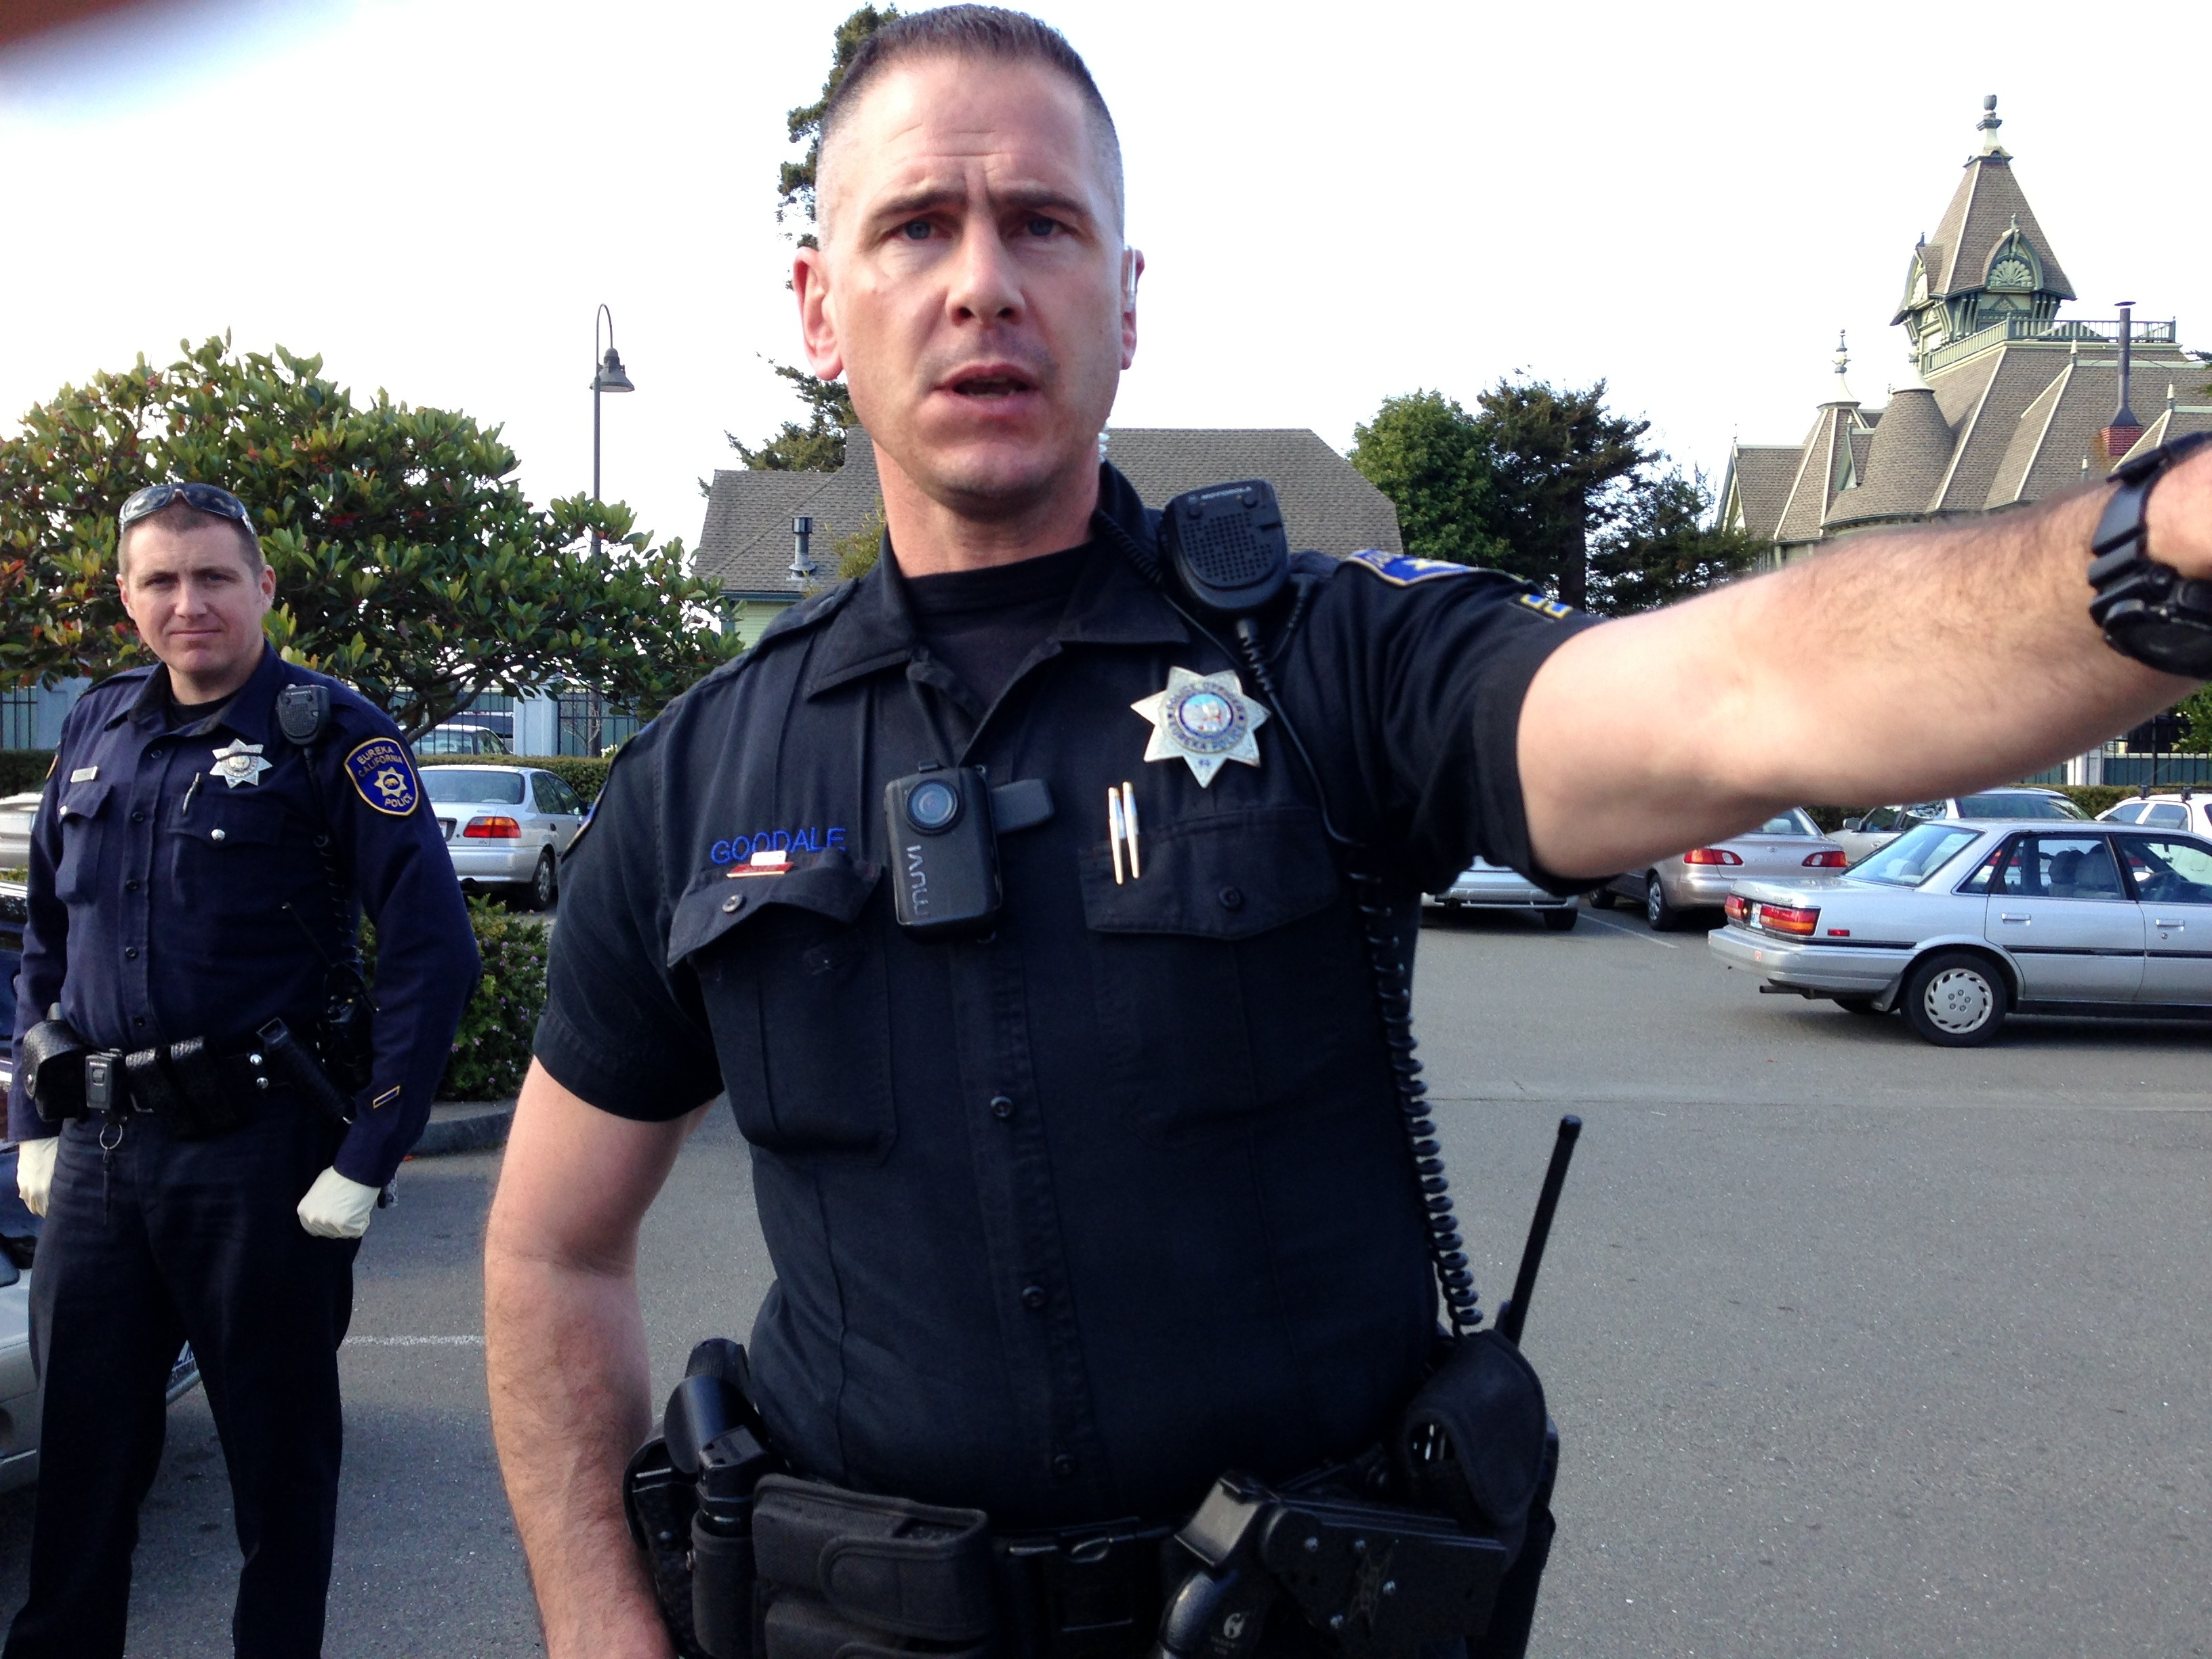 Officer Drake Goodale, as he successfully shuts down photography in a public place. - PHOTO BY CARRIE PEYTON DAHLBERG